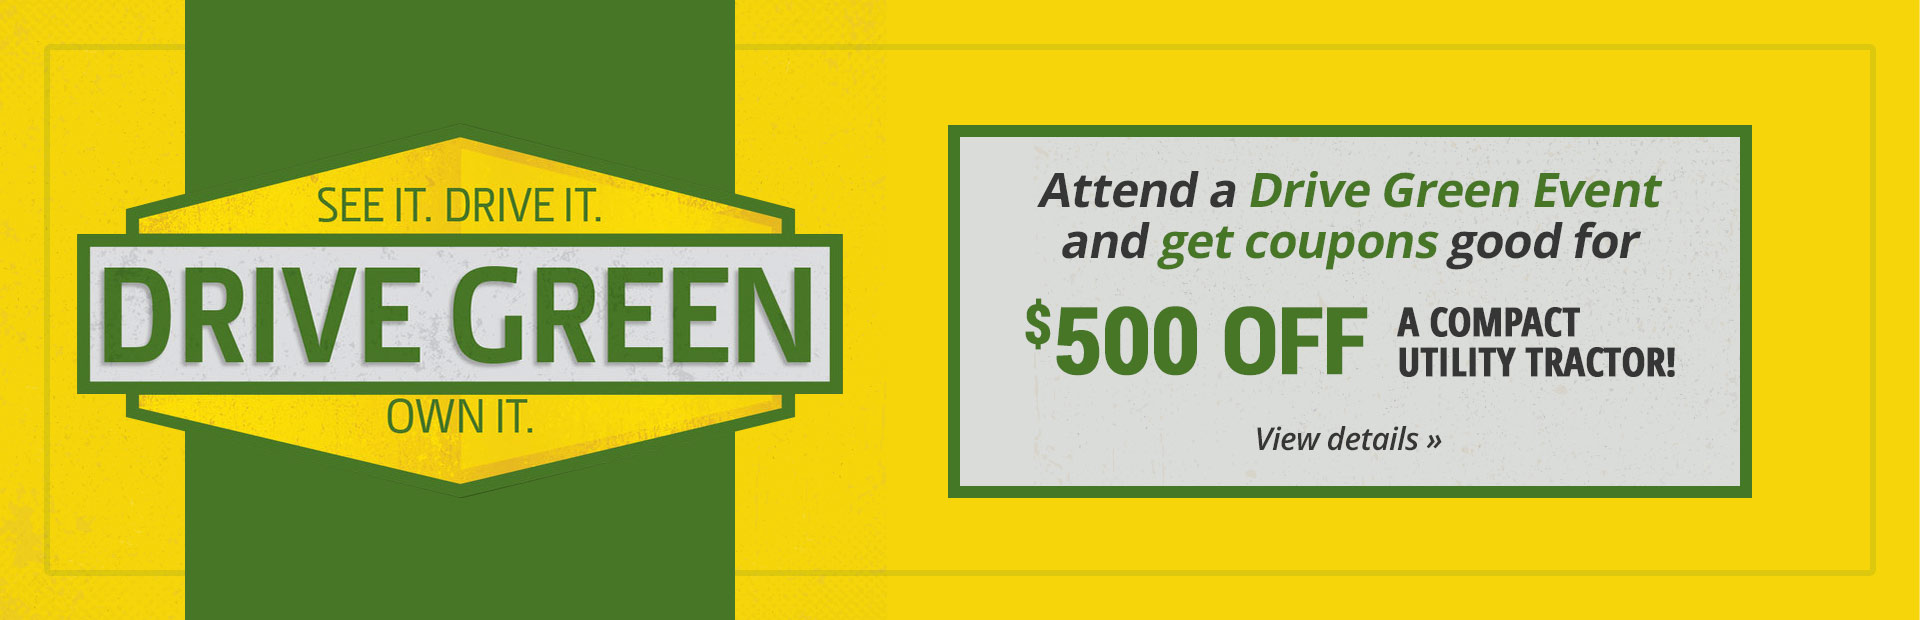 Attend a Drive Green Event and get coupons good for $500 off a compact utility tractor! Click here for details.